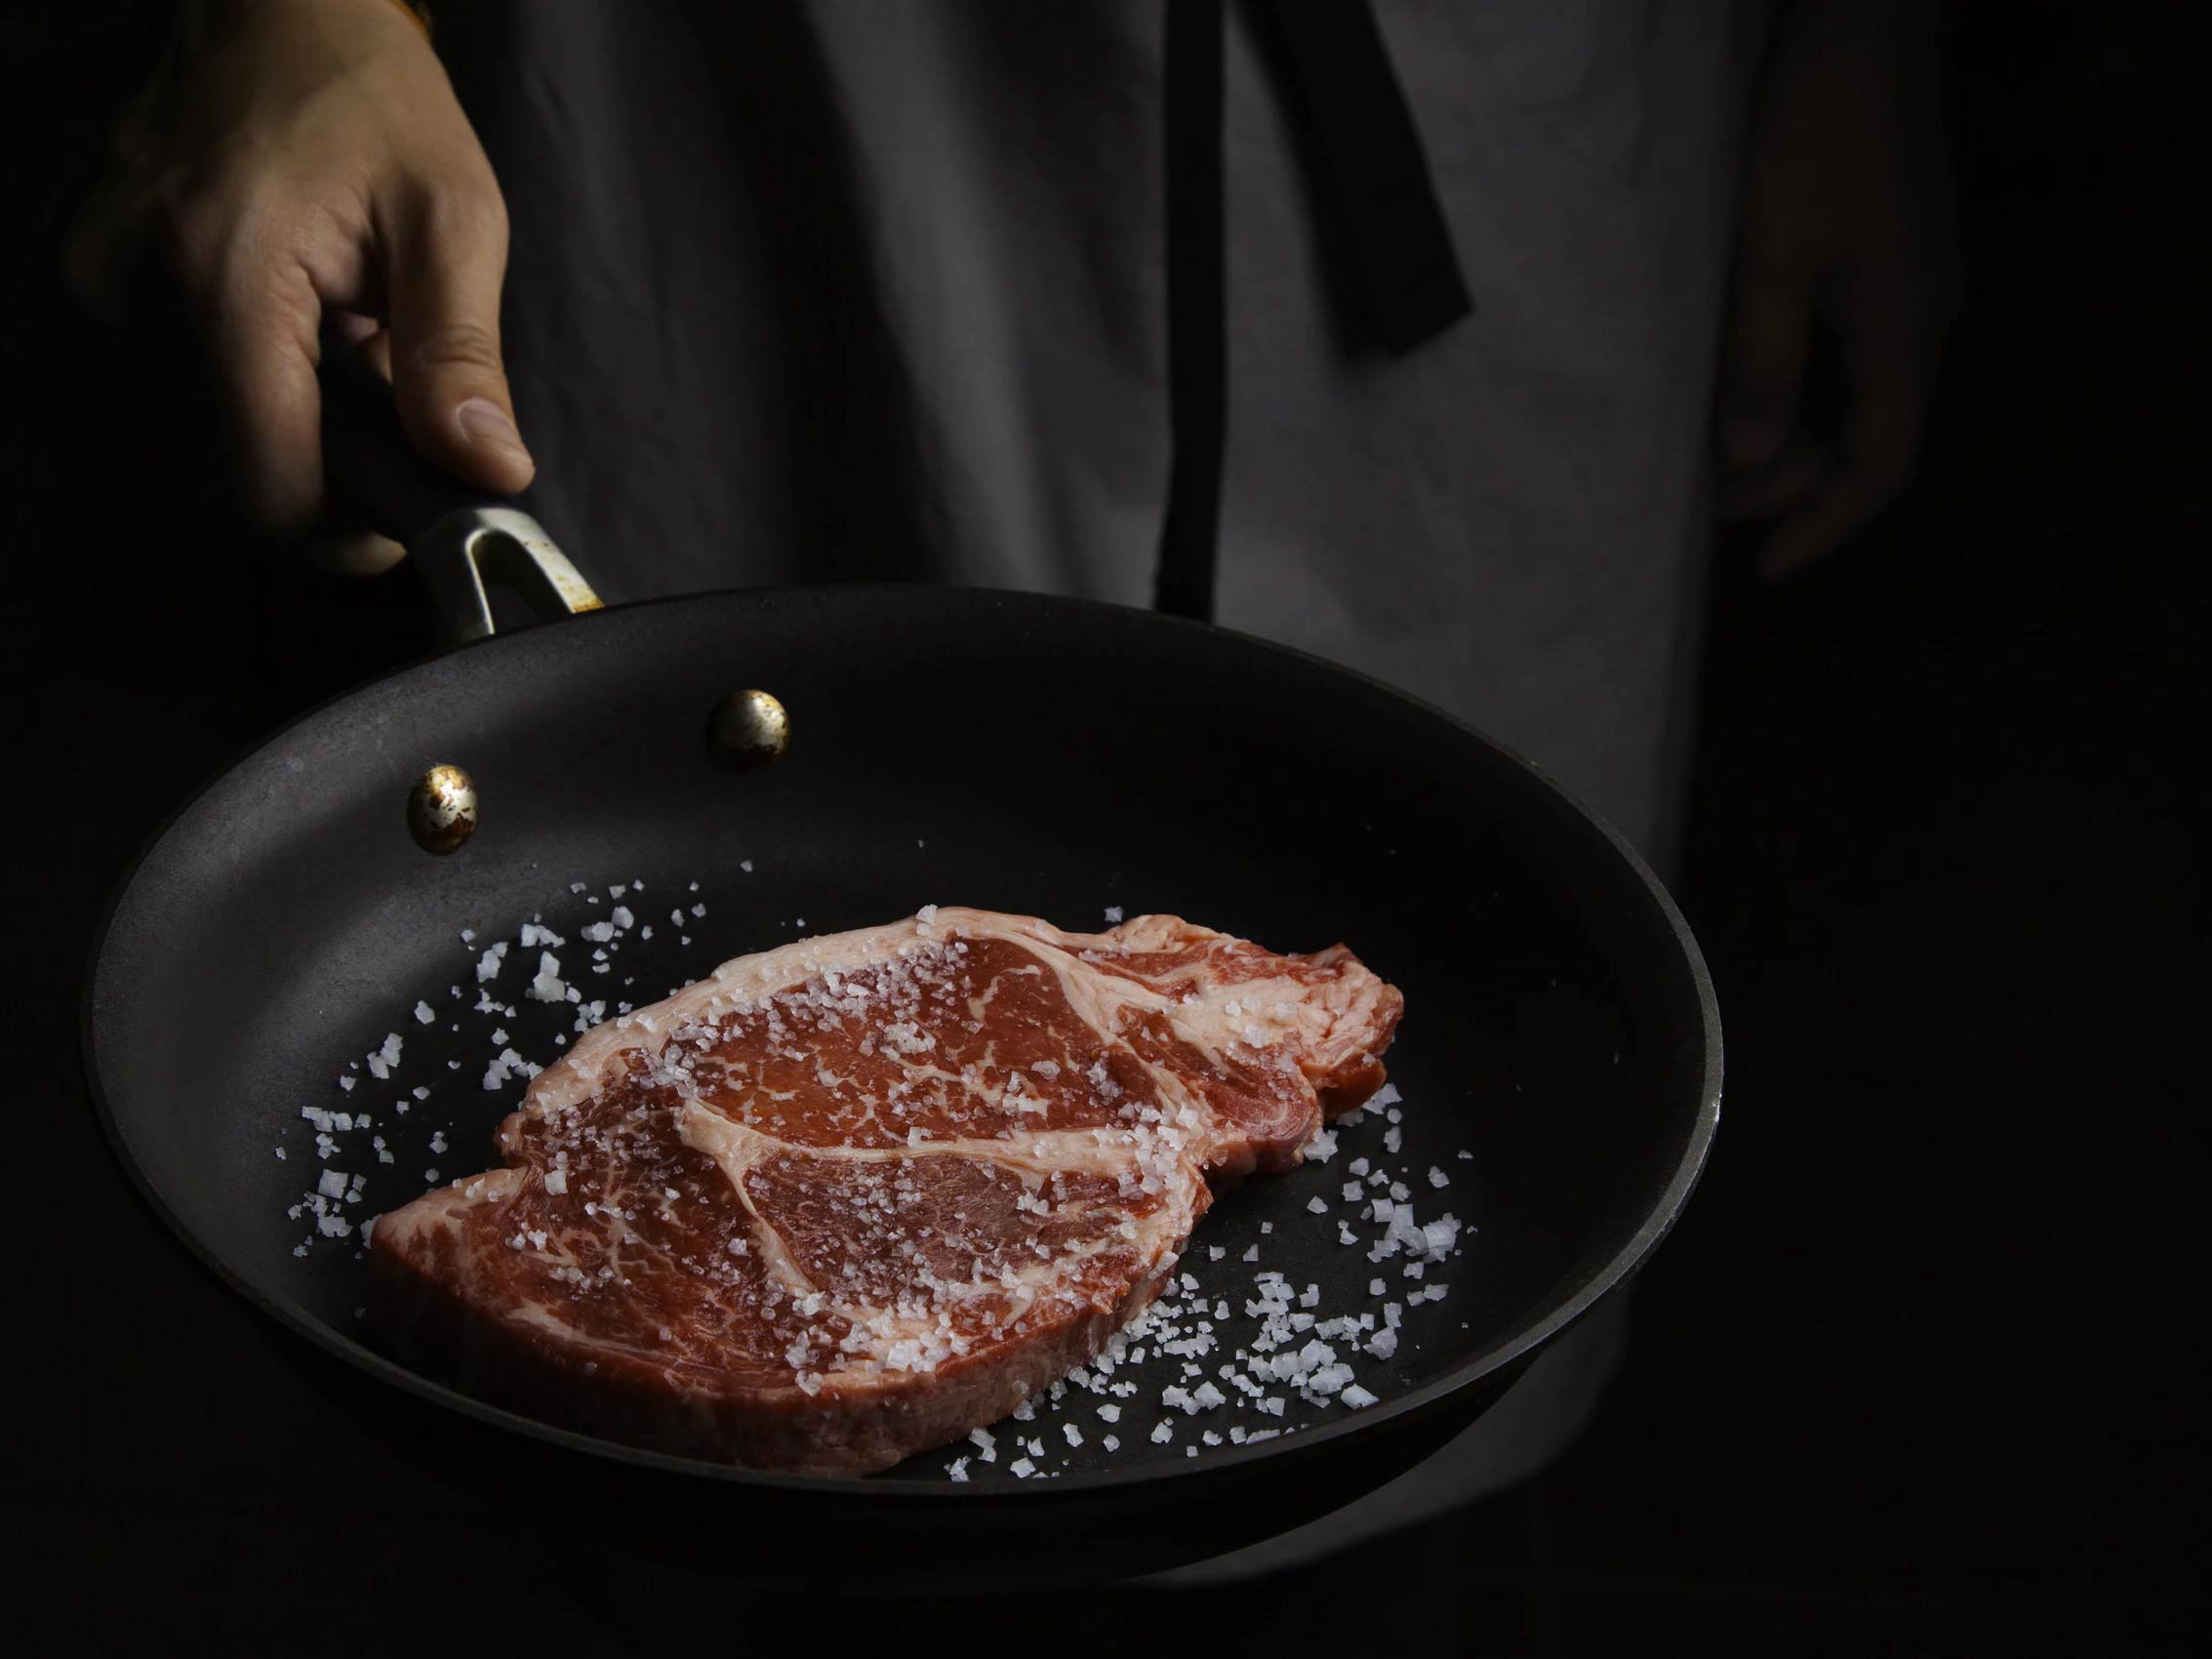 Person cooking steaks in a non-stick pan